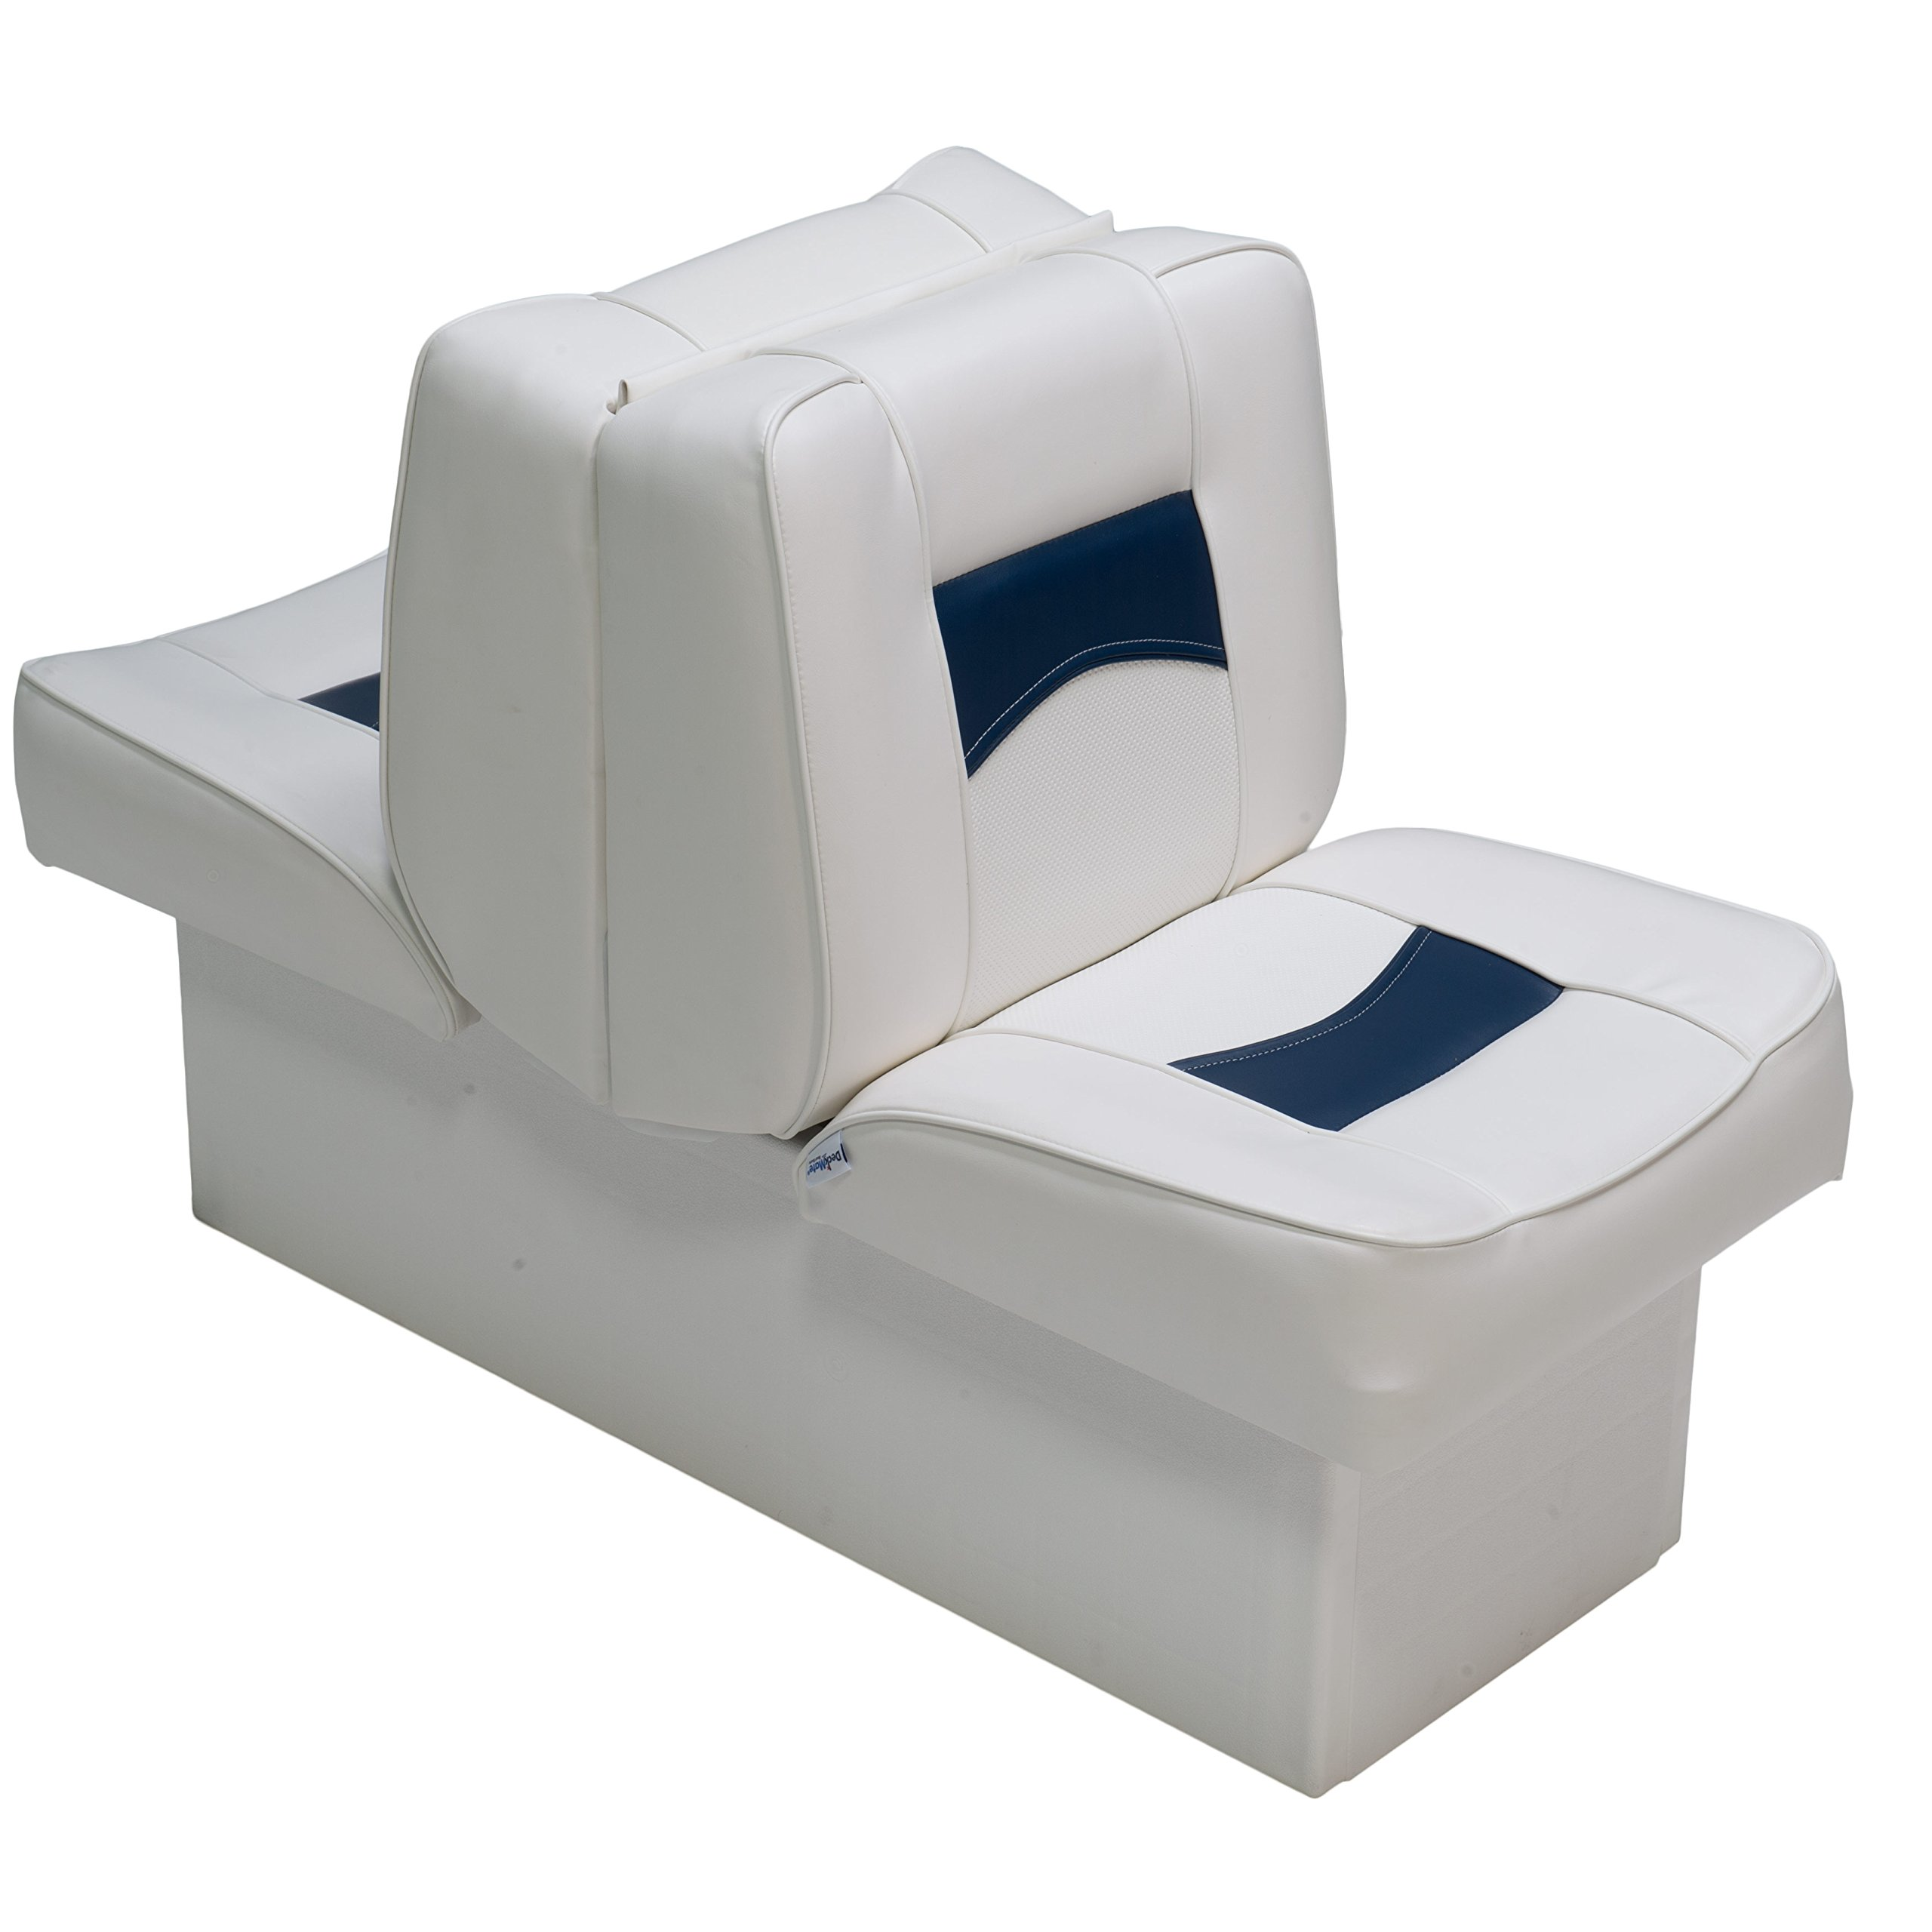 Classic Back to Back Seats (White and Blue) by DeckMate